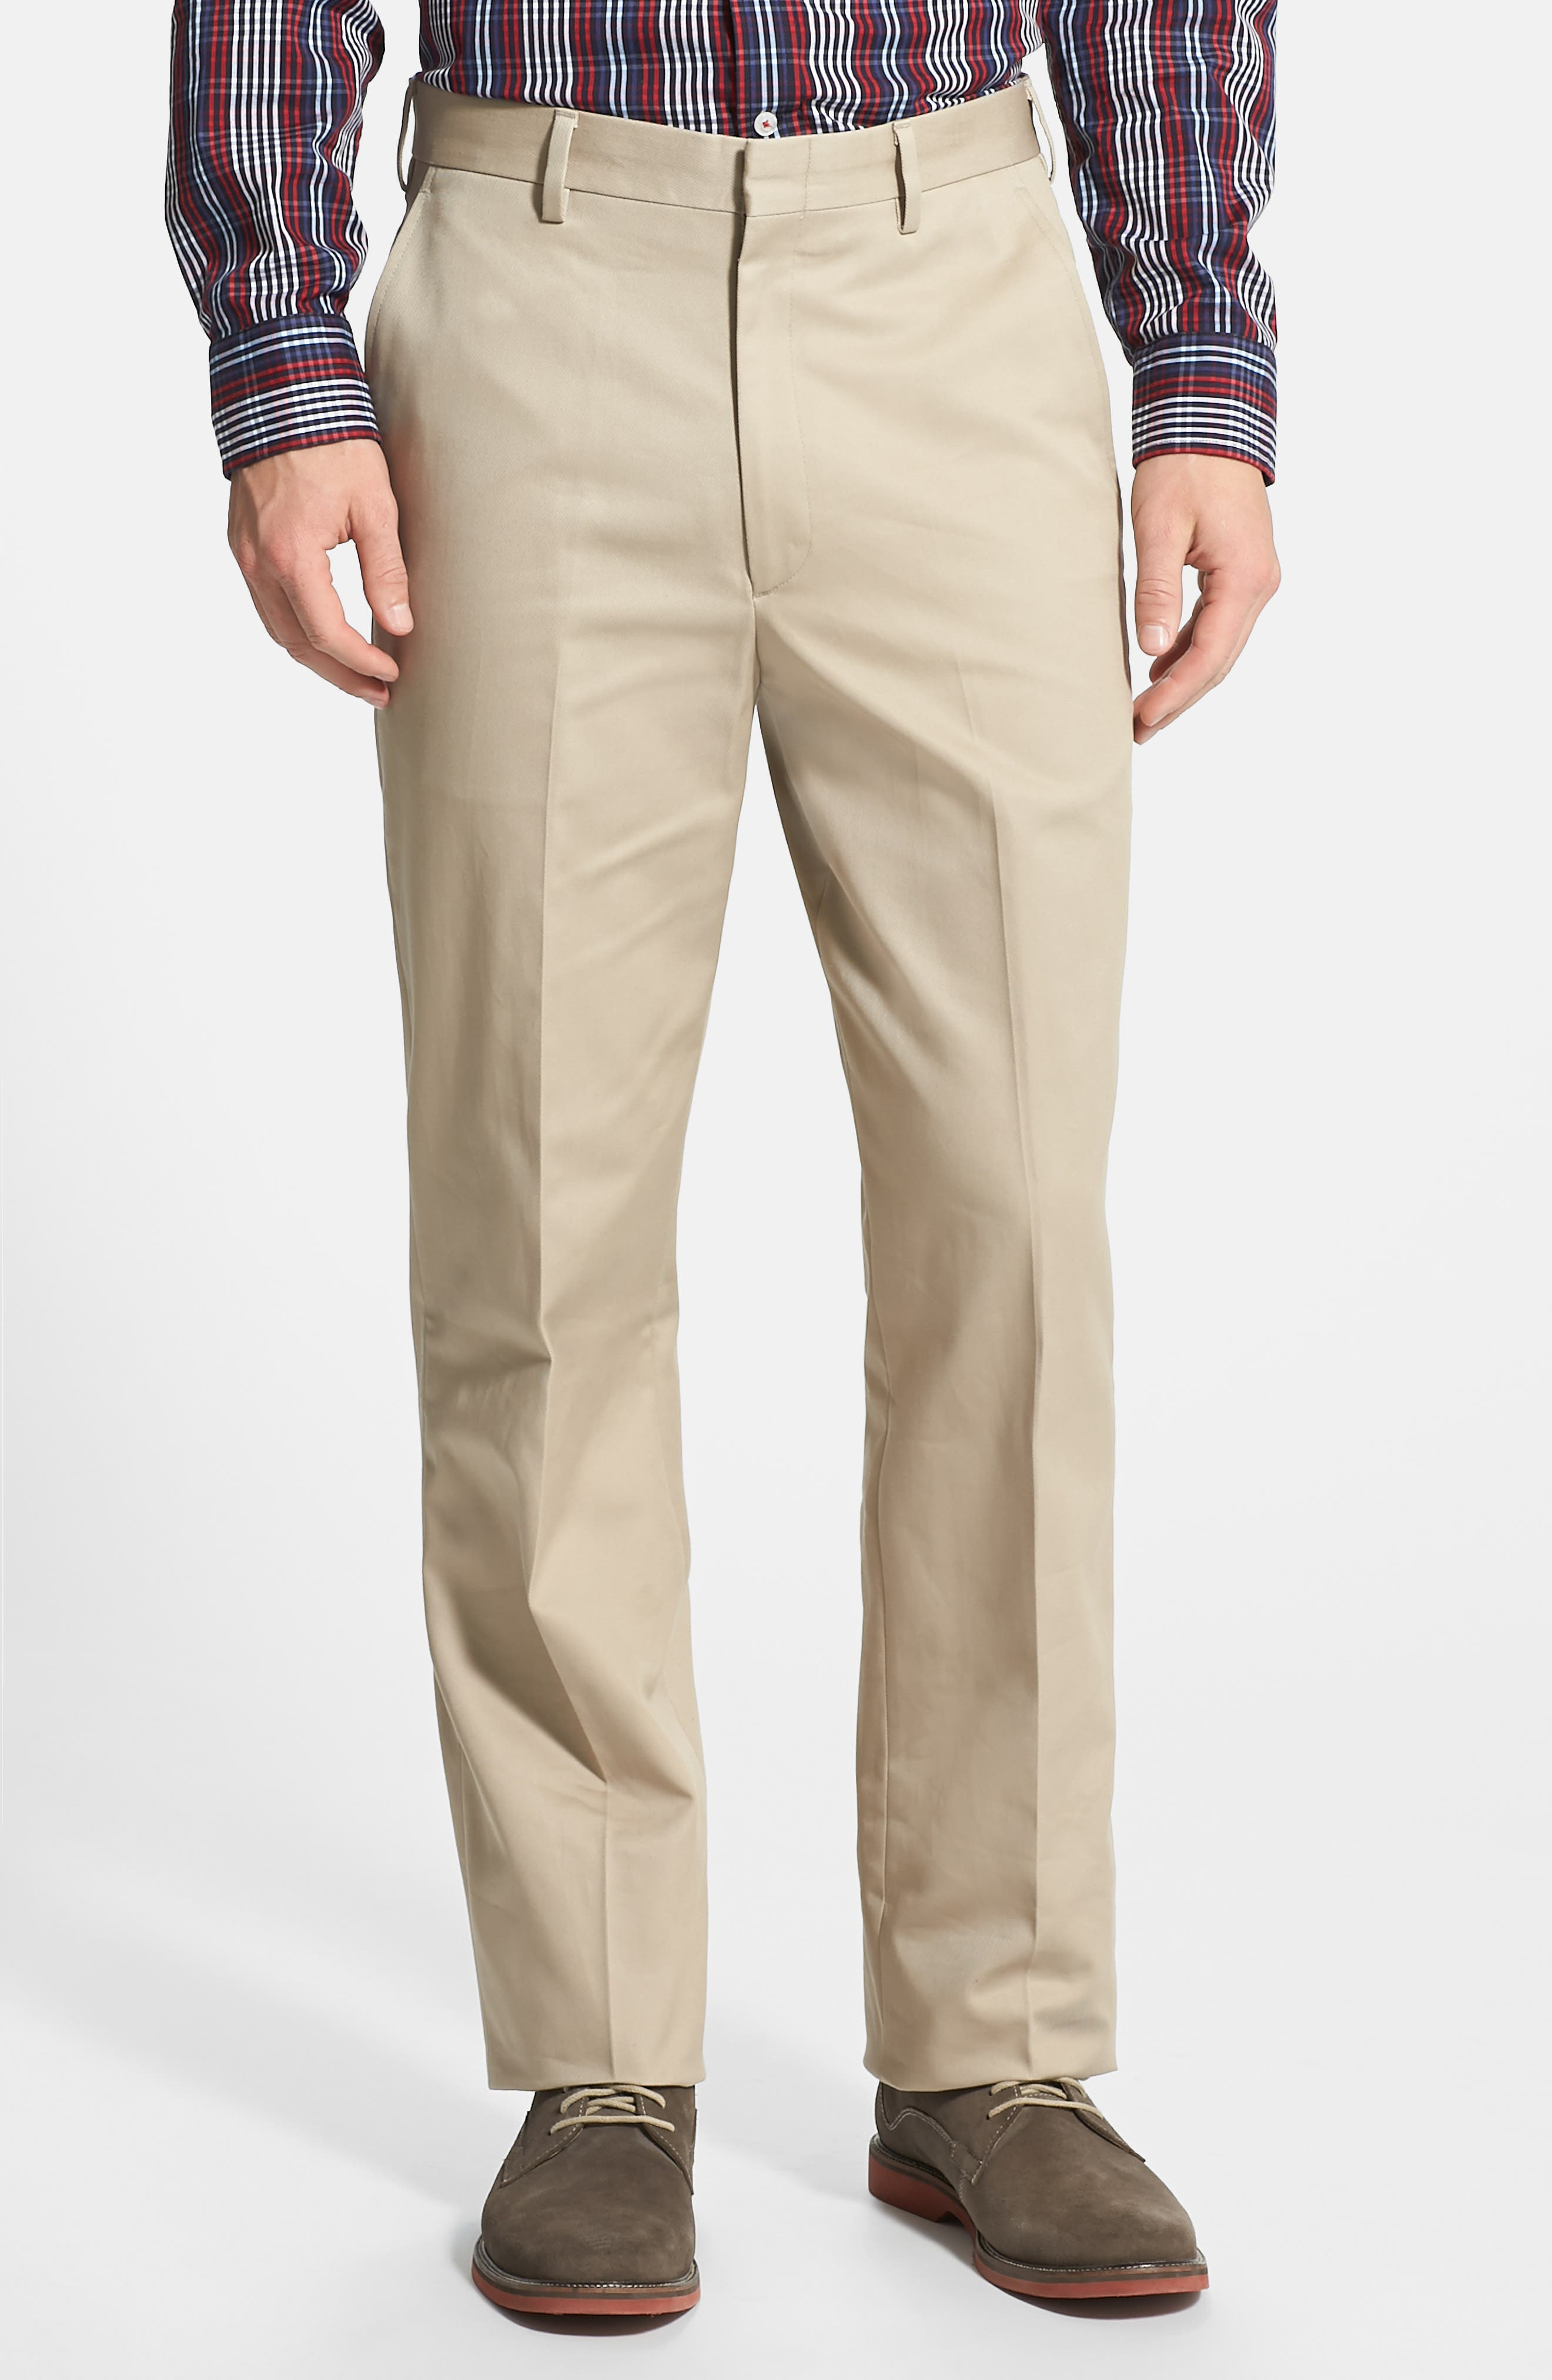 Flat Front Wrinkle Resistant Cotton Trousers,                             Alternate thumbnail 4, color,                             KHAKI